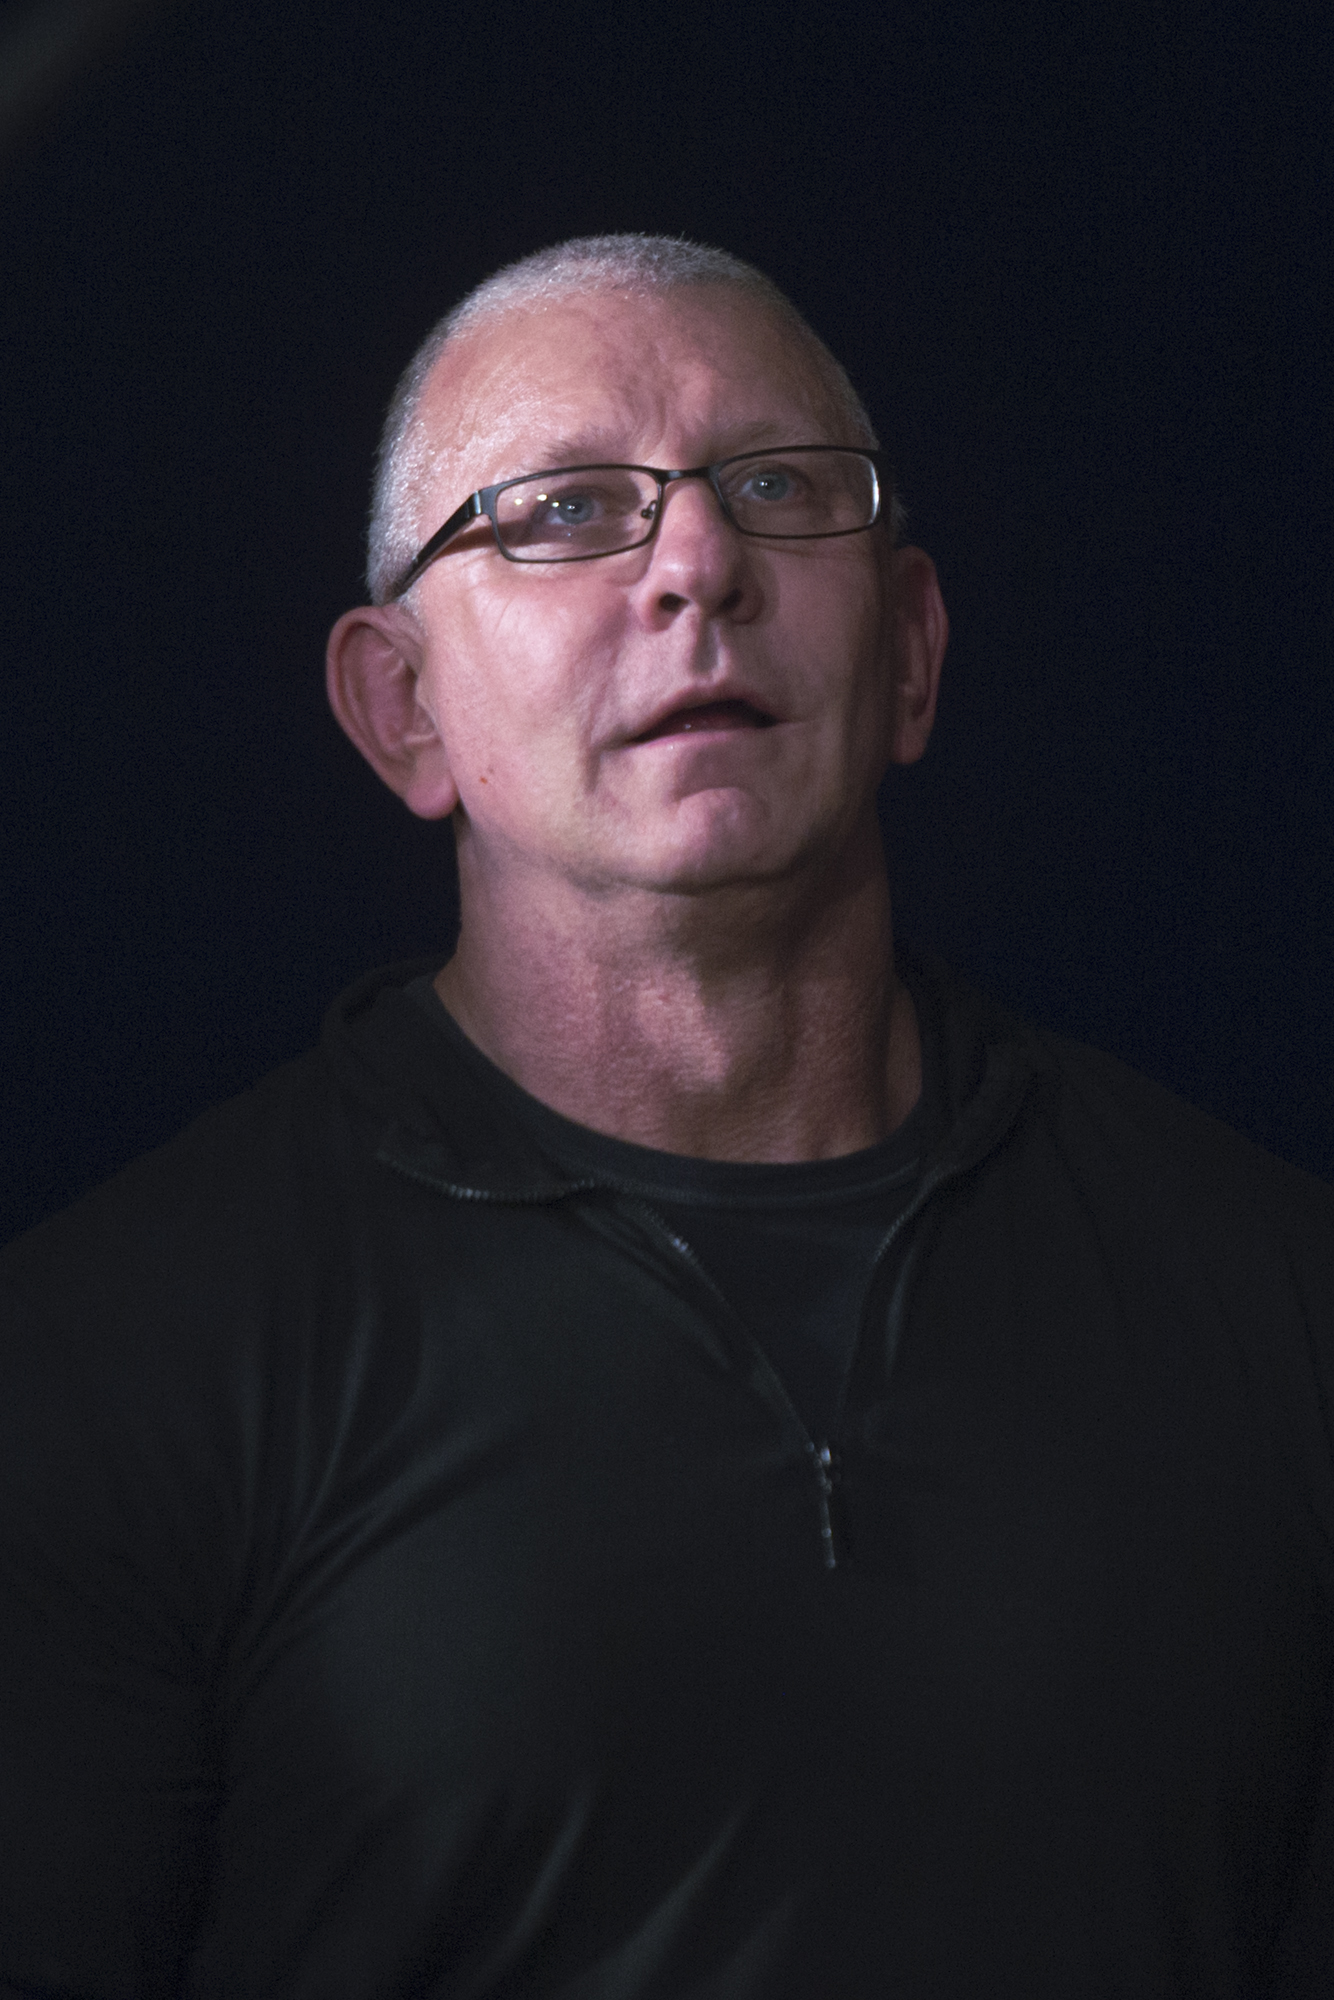 The 53-year old son of father (?) and mother(?) Robert Irvine in 2018 photo. Robert Irvine earned a  million dollar salary - leaving the net worth at 15 million in 2018